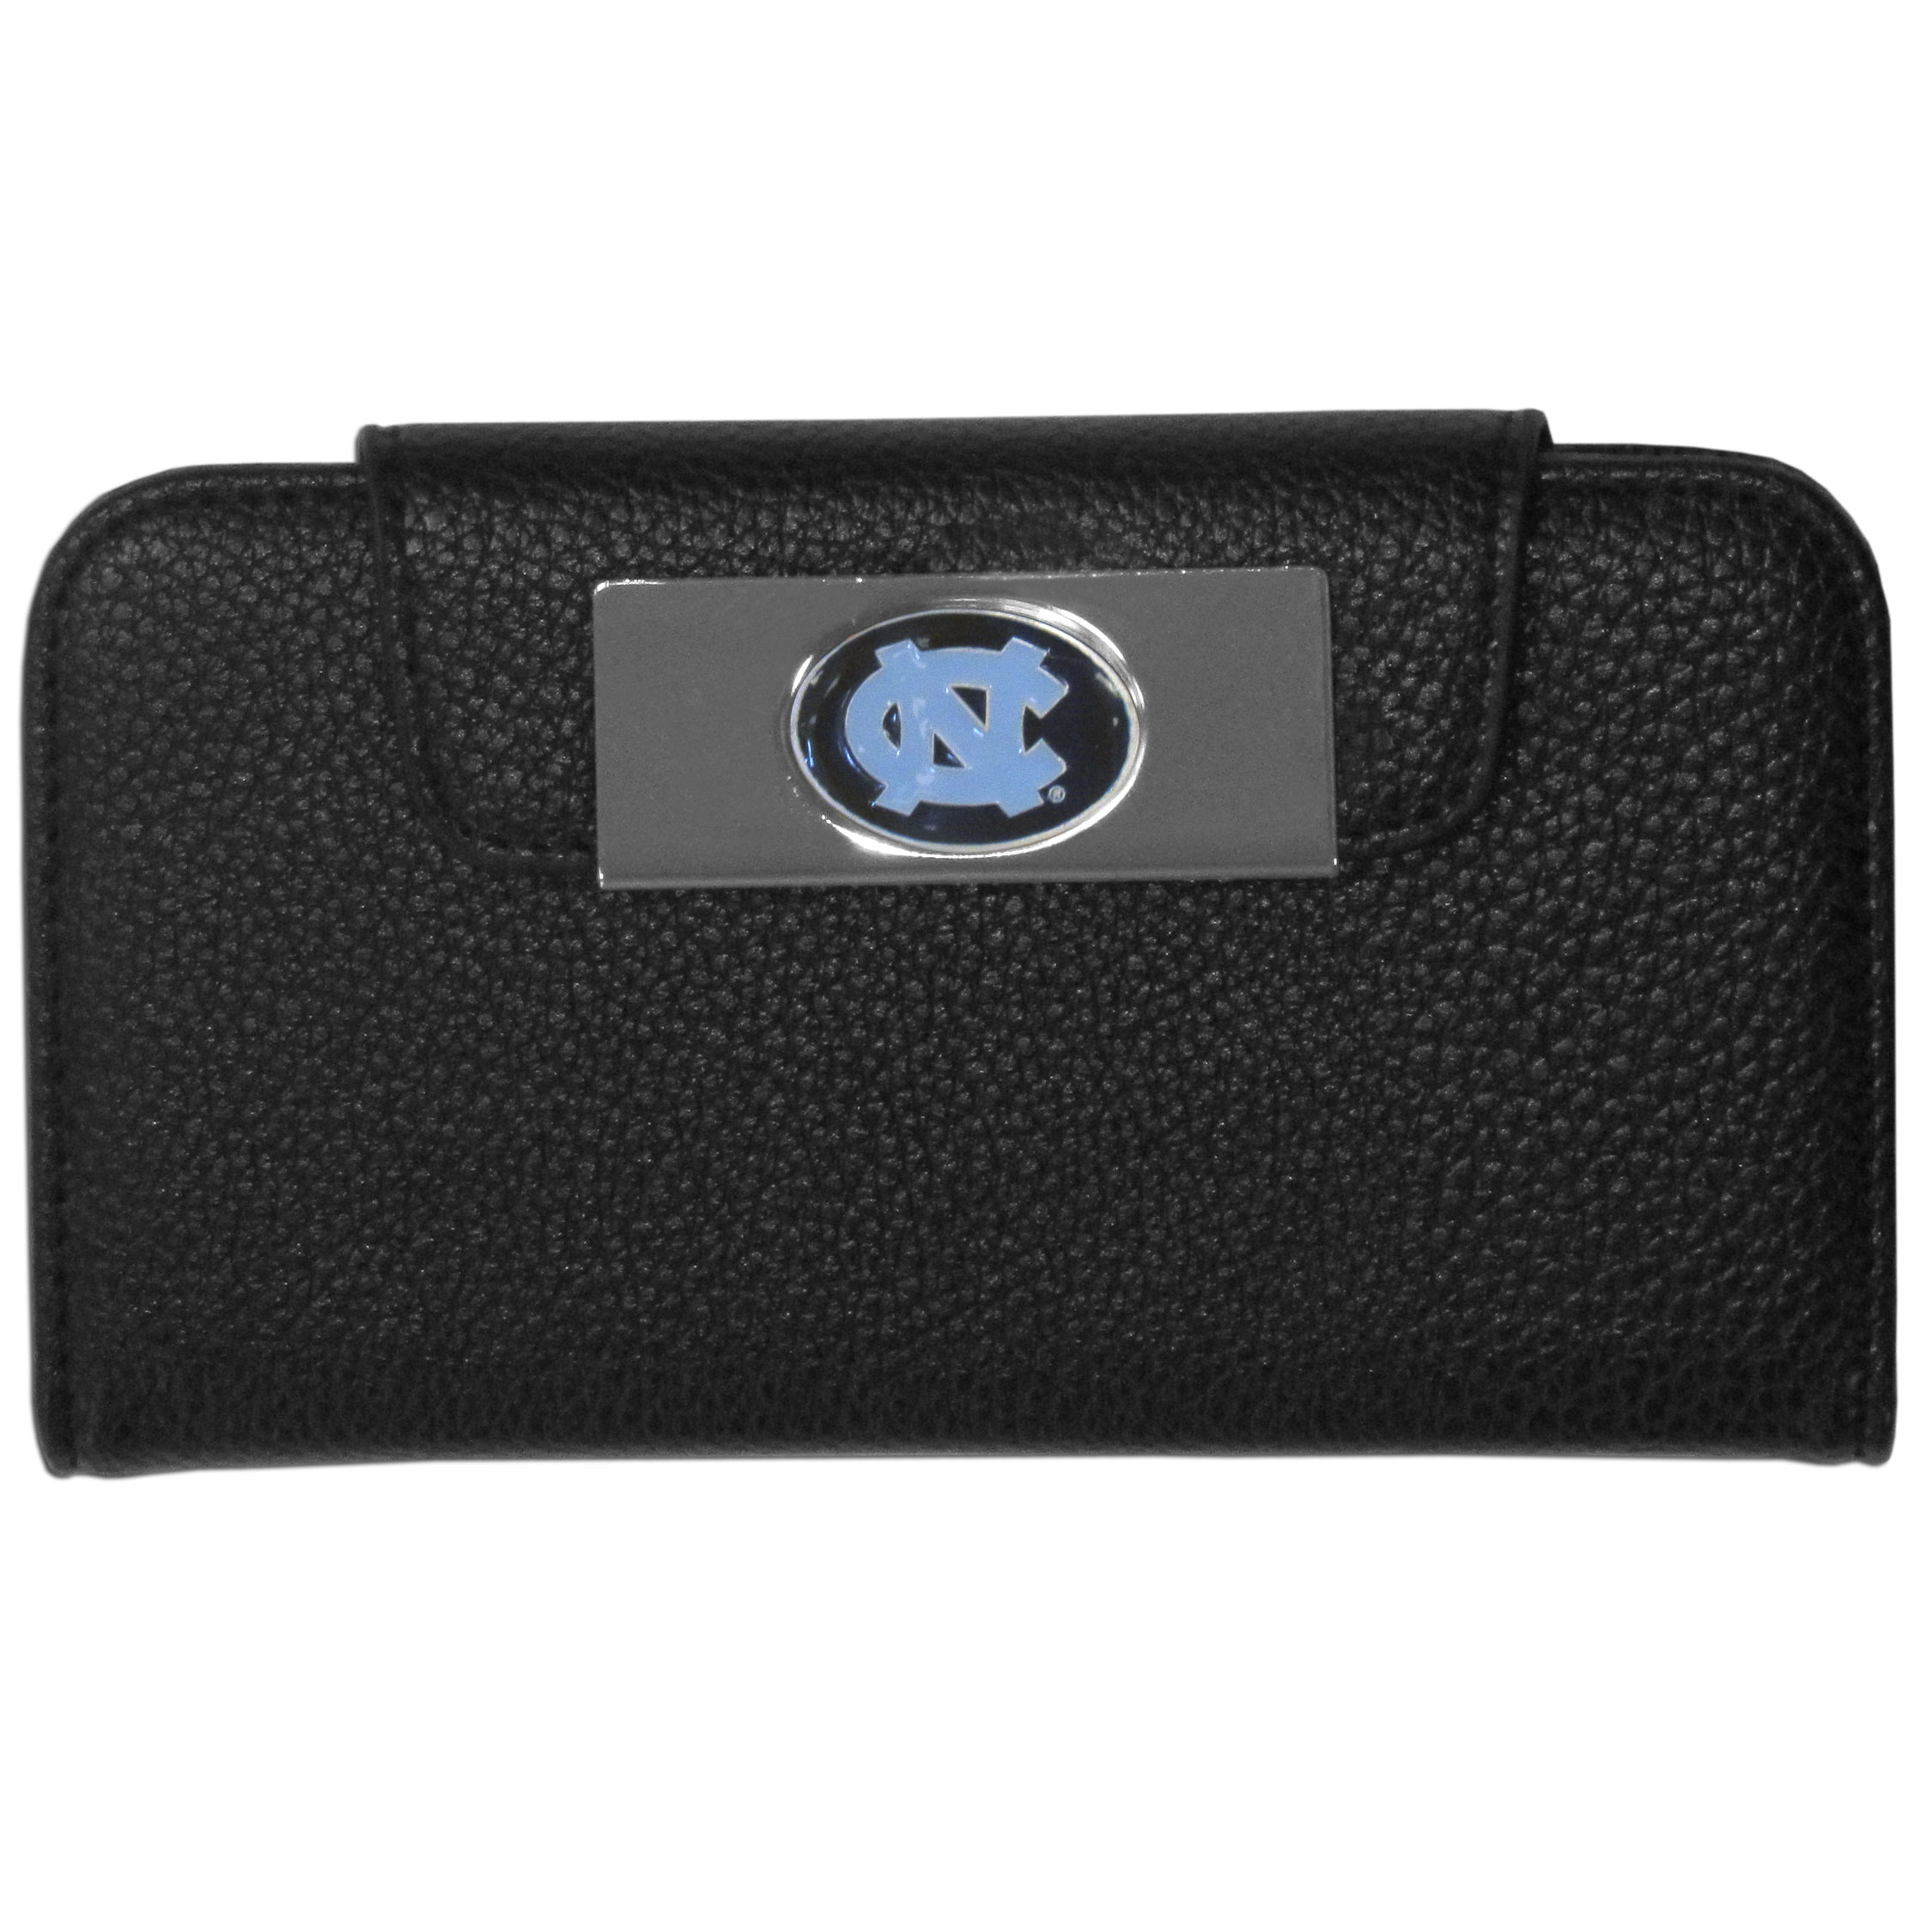 N. Carolina Tar Heels Samsung Galaxy S4 Wallet Case - This new & wildly popular case is ideal for those who like to travel light! The stylish case has an inner hard shell that securely holds your phone while allowing complete access to the phone's functionality. The flip cover has slots for credit cards, business cards and identification. The magnetic flip cover has a metal N. Carolina Tar Heels emblem on a high polish chrome backing. Fits the Samsung Galaxy S4